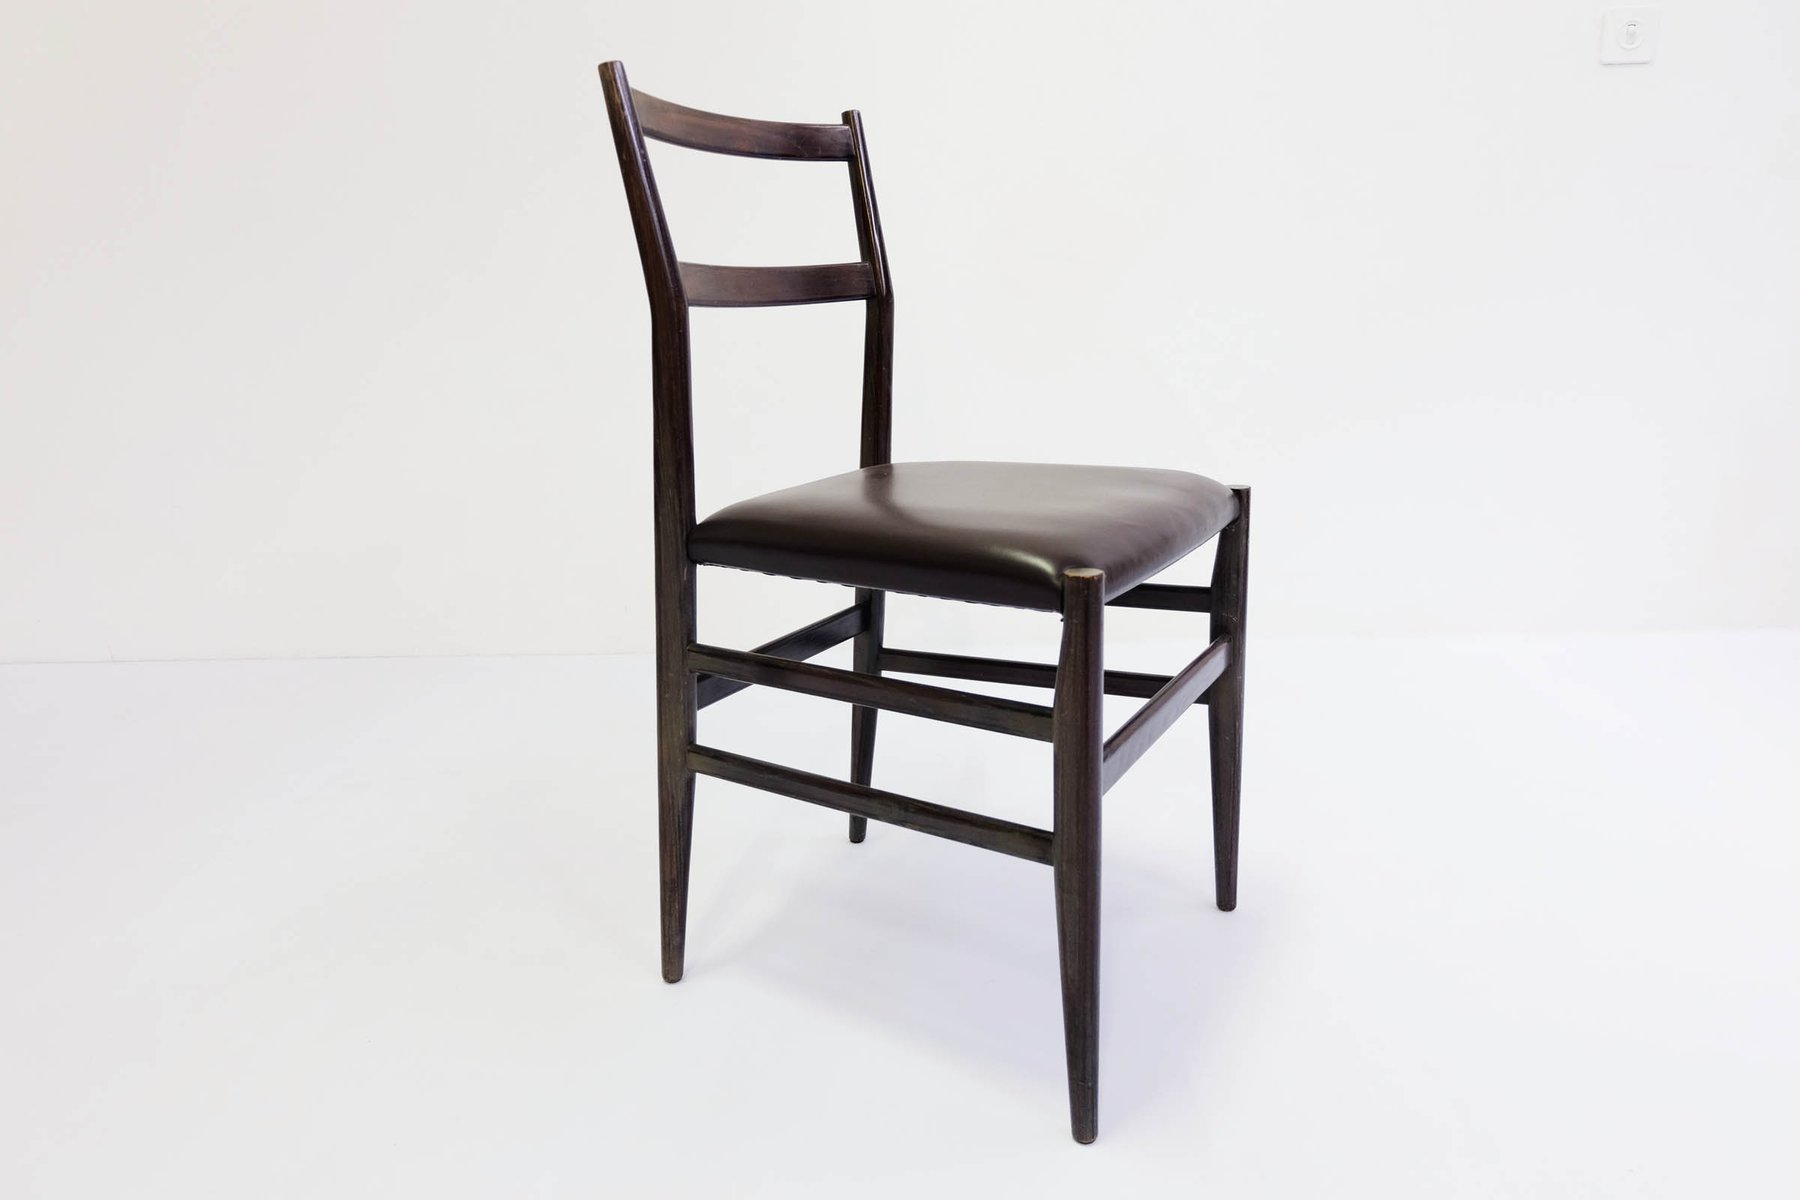 leggera side chair by gio ponti for cassina 1951 for sale at pamono. Black Bedroom Furniture Sets. Home Design Ideas